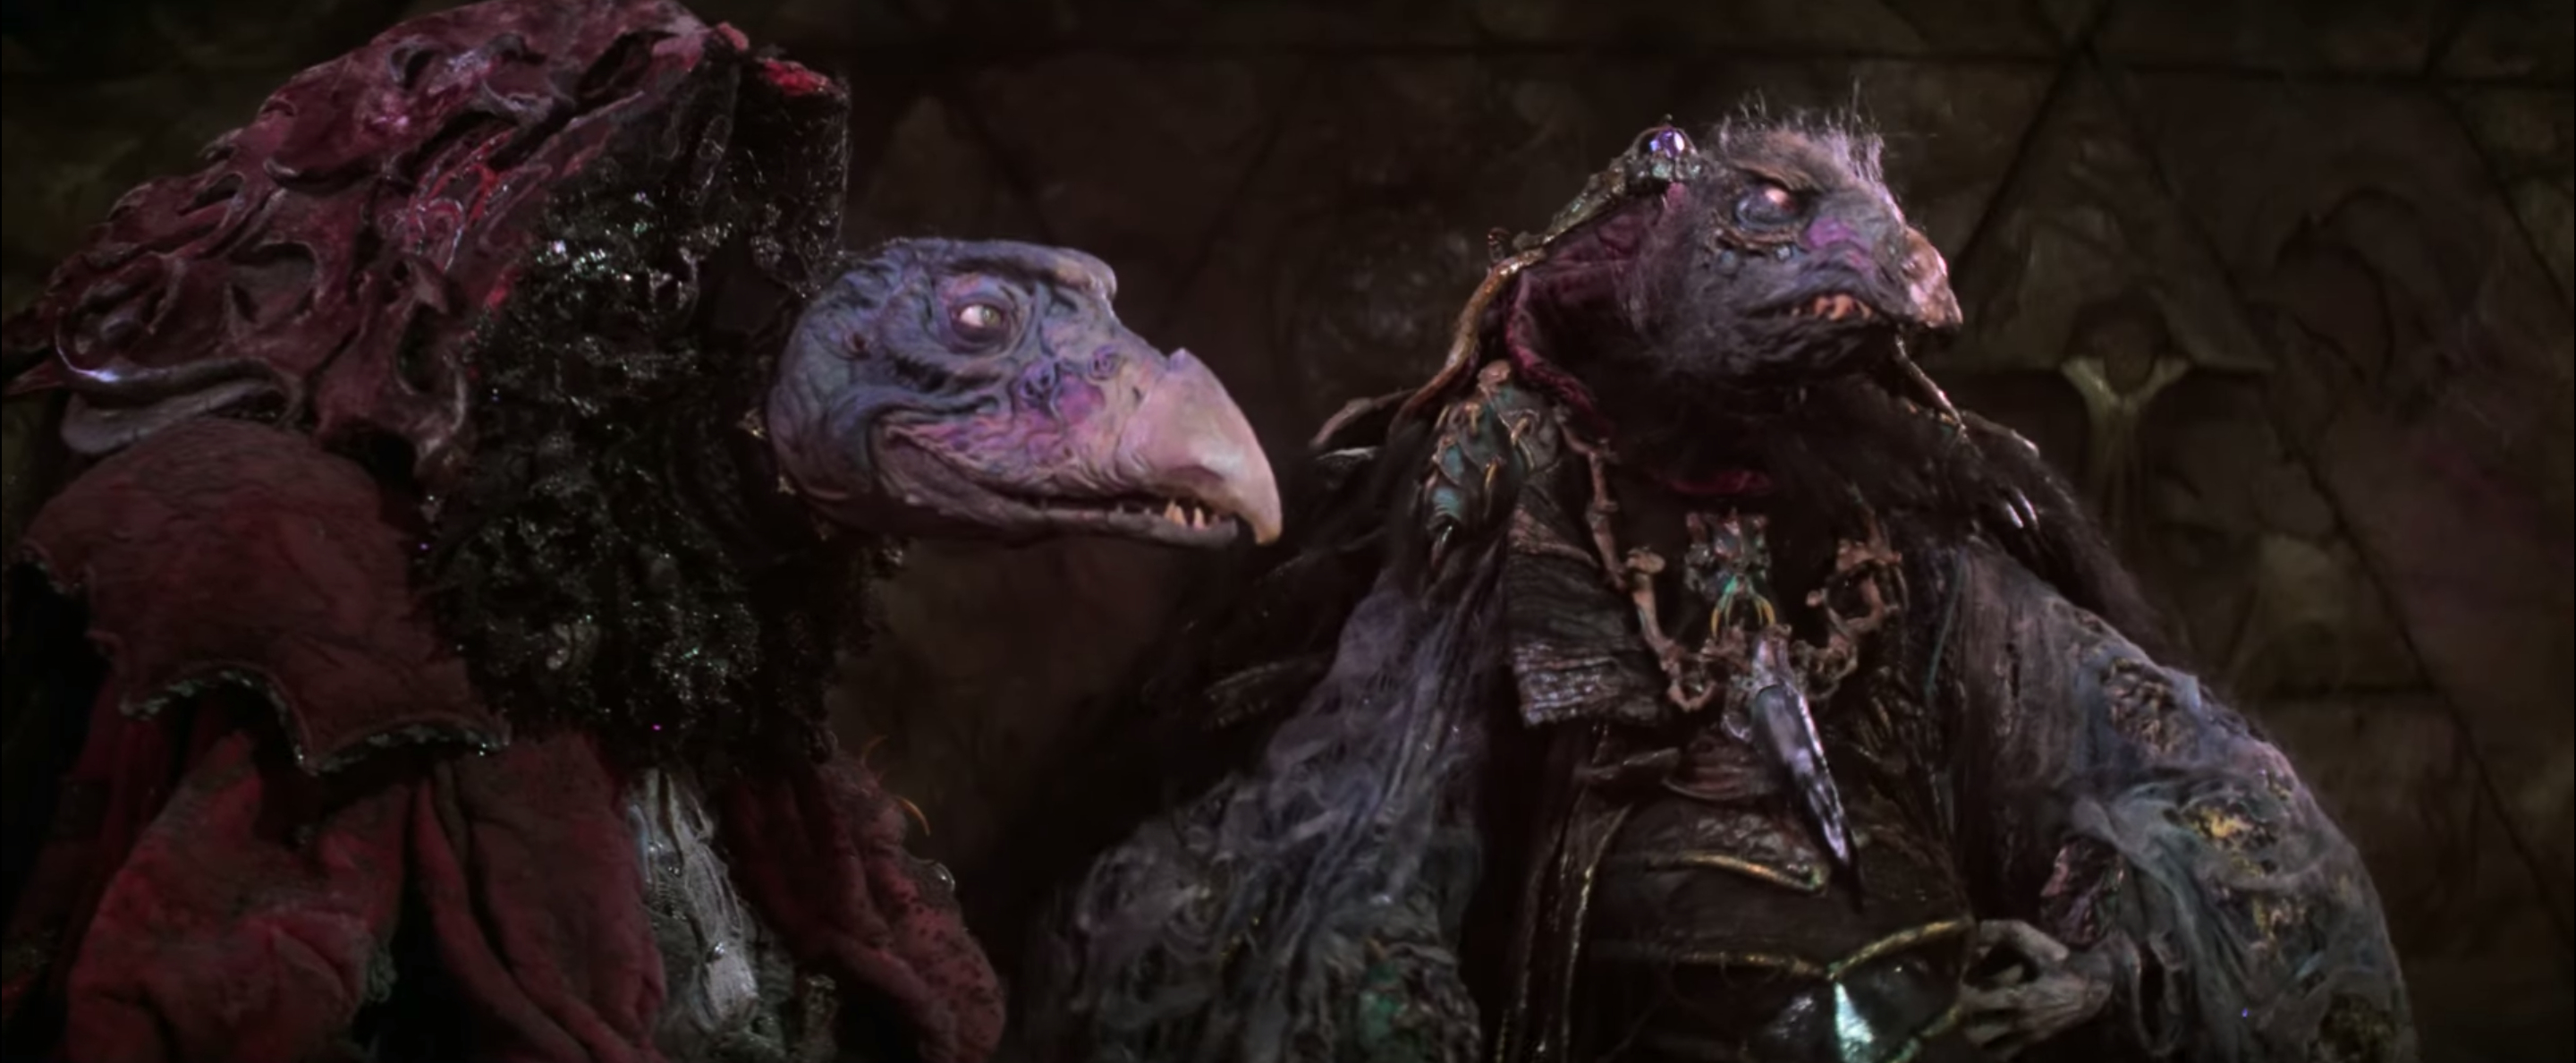 Skeksis | The Dark Crystal Wiki | FANDOM powered by Wikia